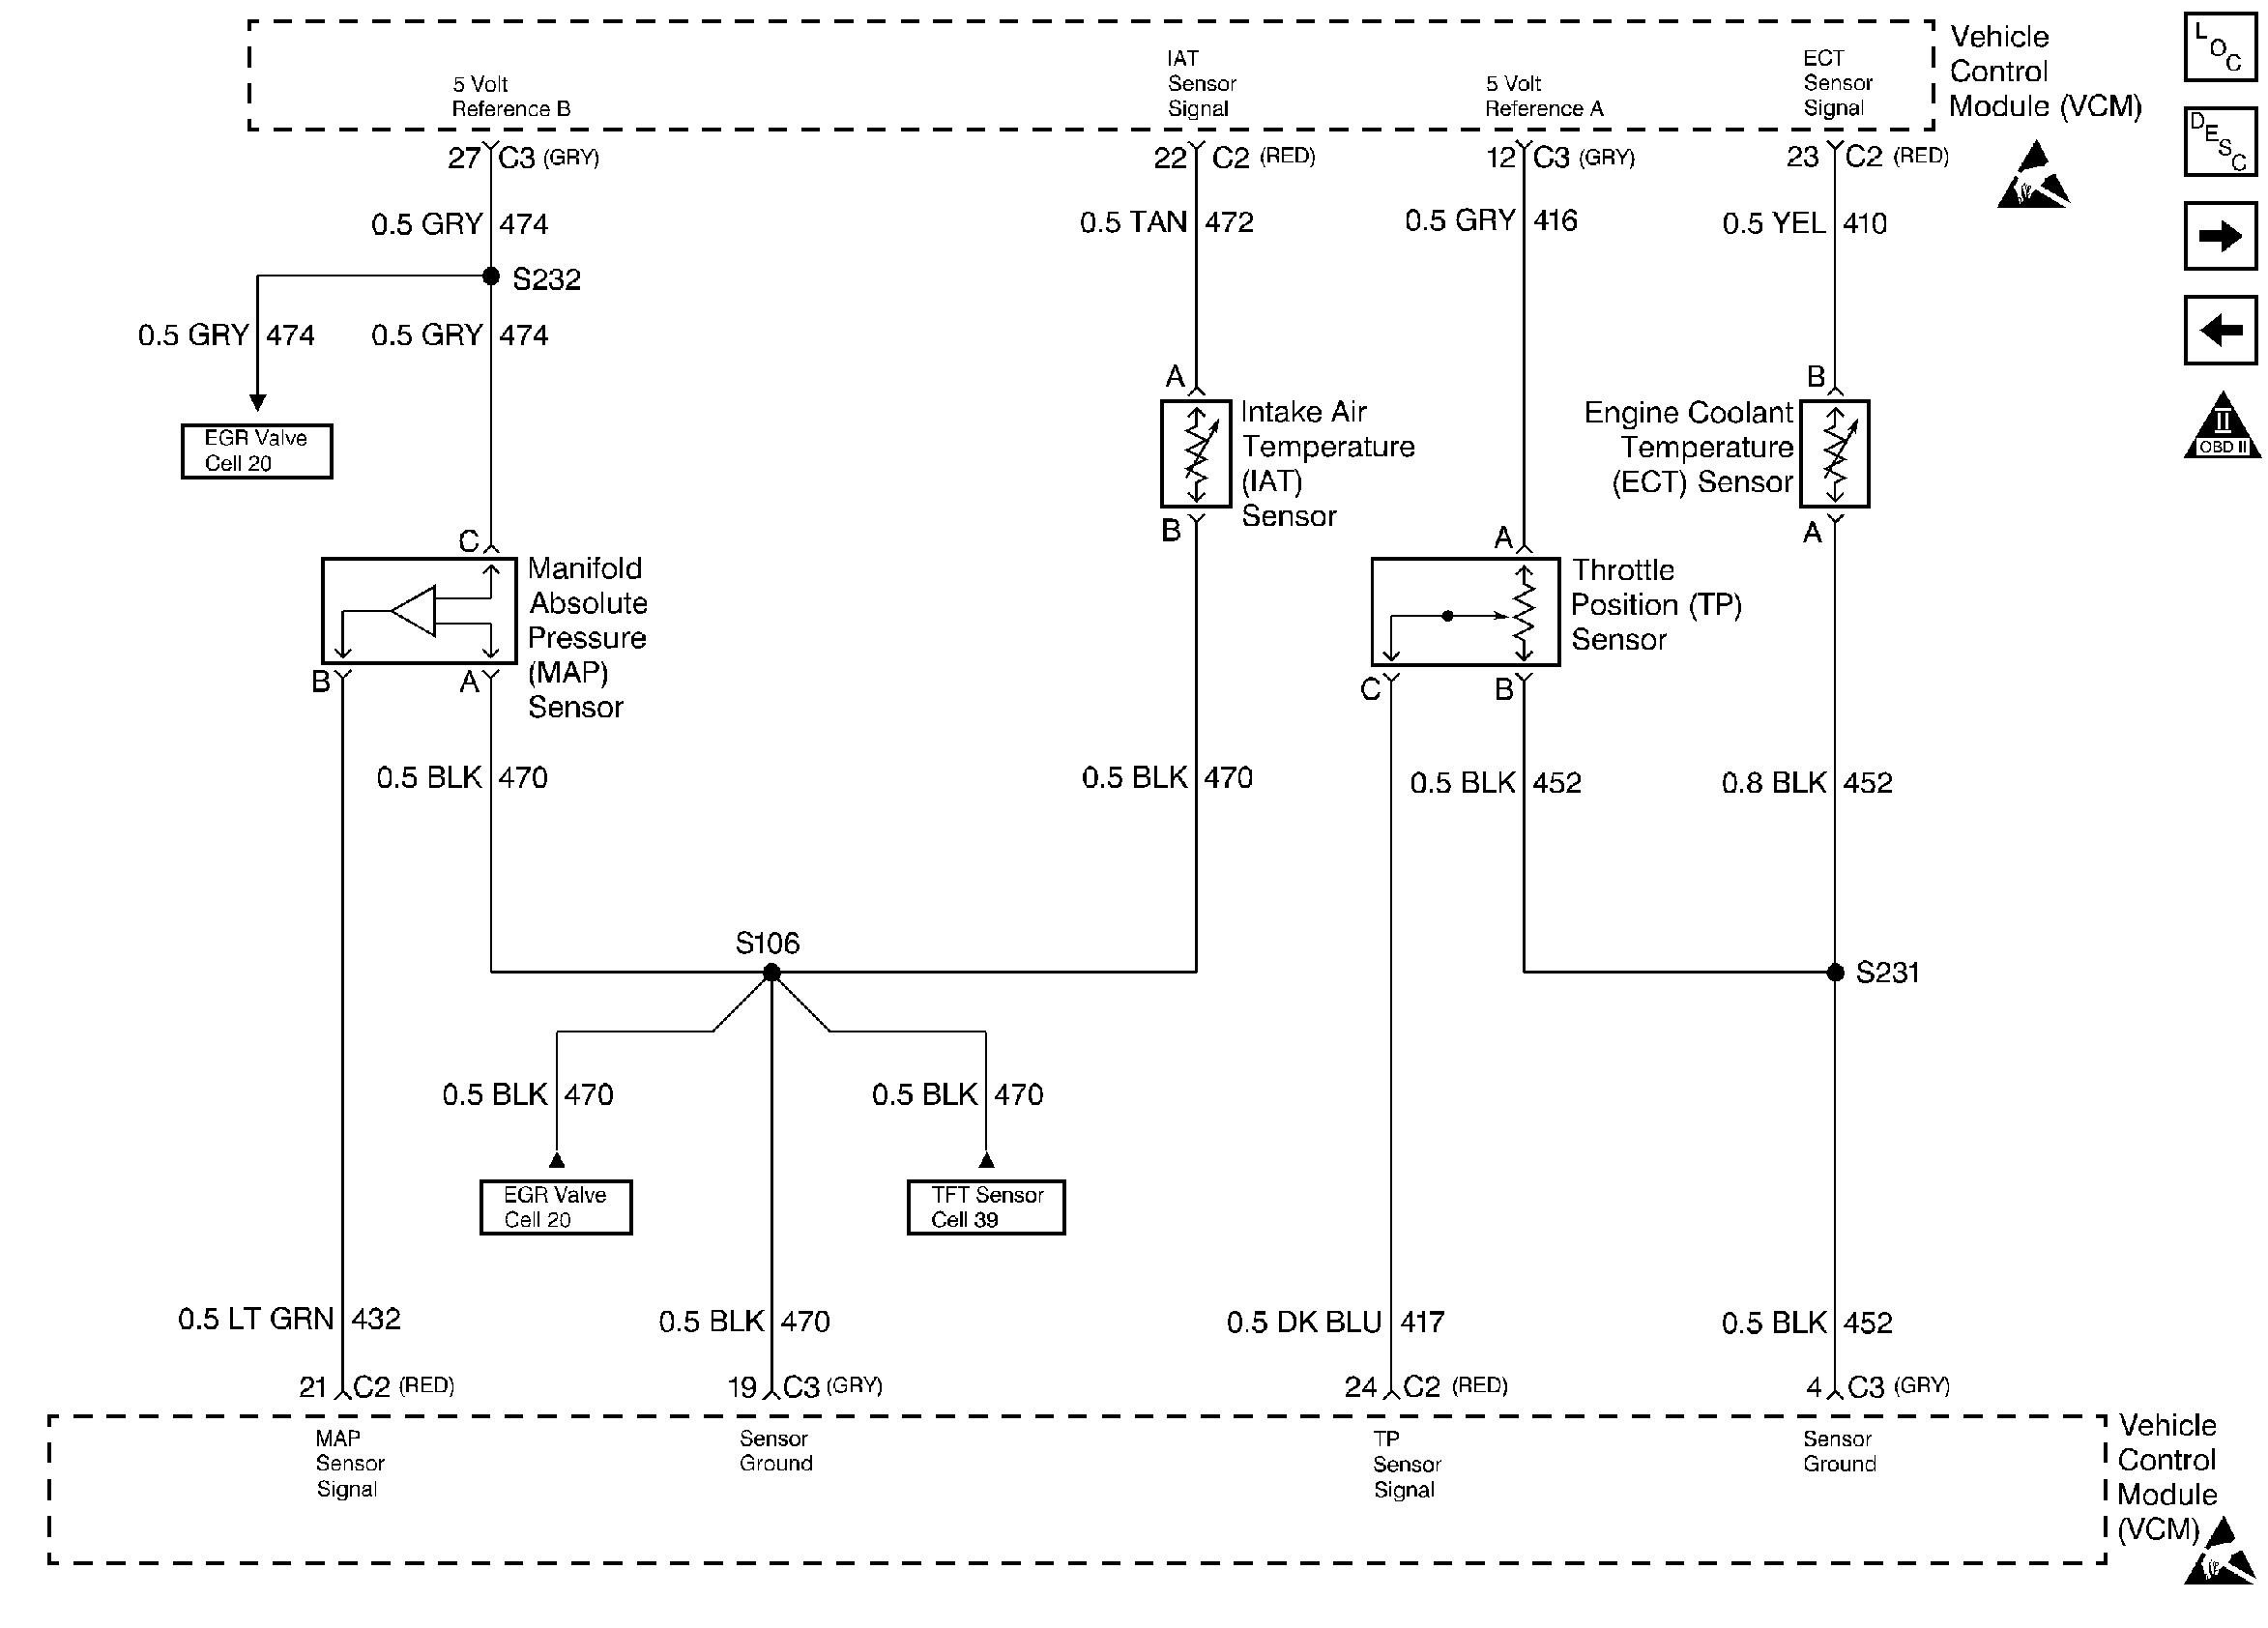 4 3l vortec engine component diagram auto electrical wiring diagram \u2022  4 3 l vortec engine wire diagram example electrical wiring diagram u2022 rh emilyalbert co chevy 4 3l vortec engine oiling system diagram 4 3l v6 vortec